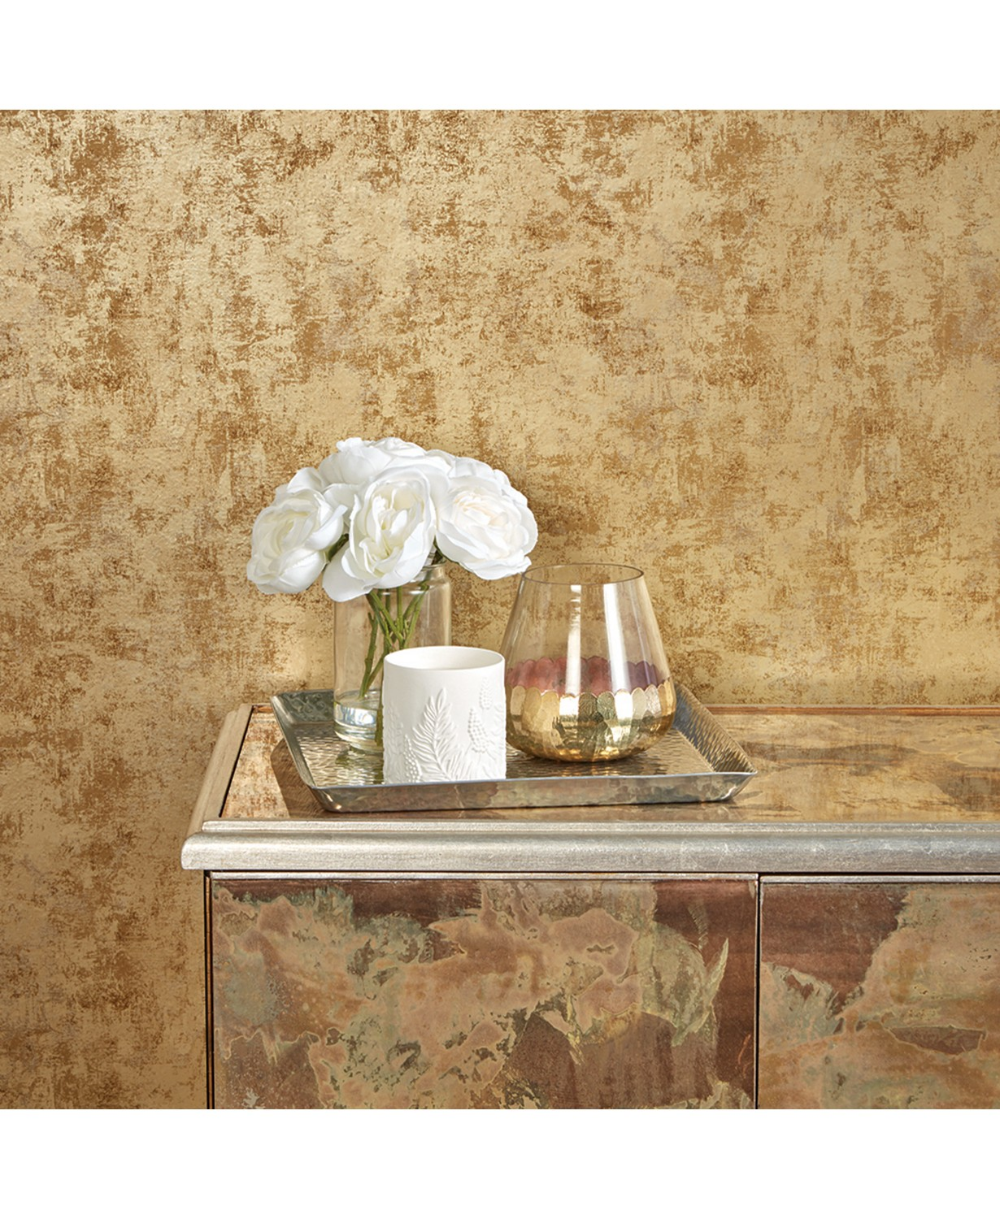 Tempaper Distressed Gold Leaf Self Adhesive Wallpaper Reviews Wallpaper Home Decor Removable Wallpaper Peel And Stick Wallpaper Self Adhesive Wallpaper